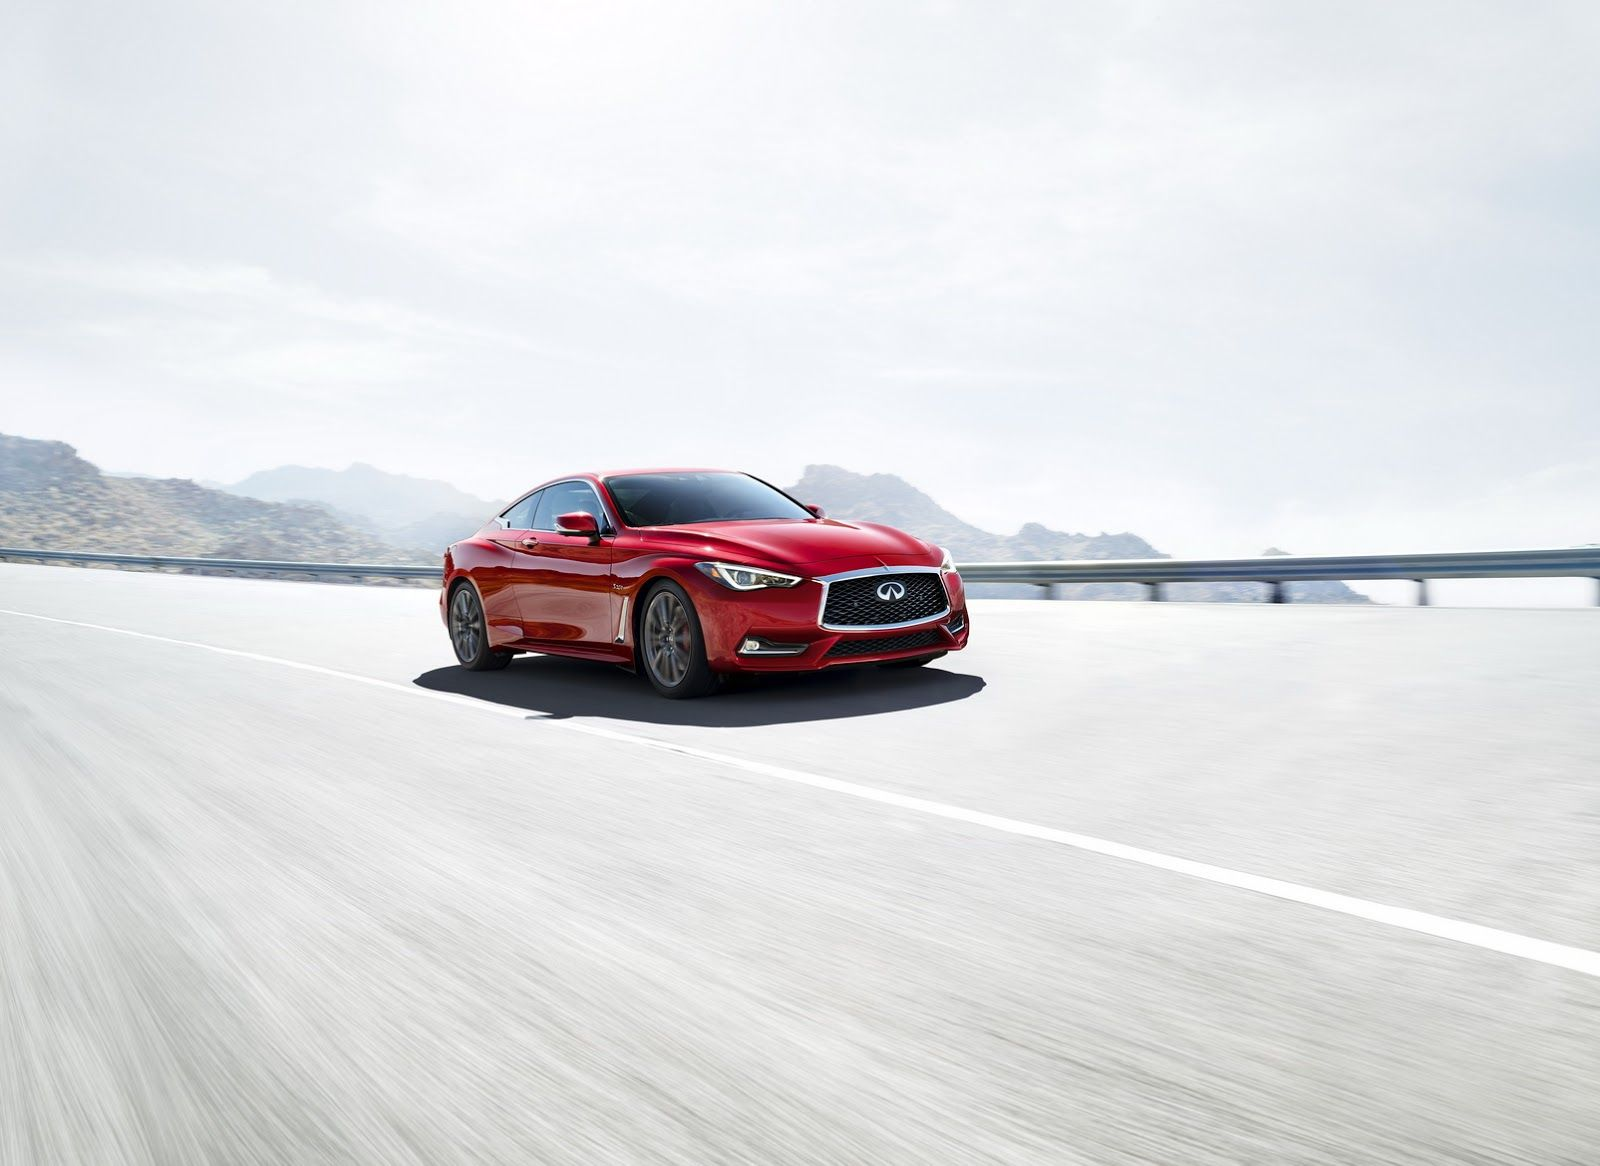 Infiniti Prices The Q60 Red Sport 400 At 51,300 In The US